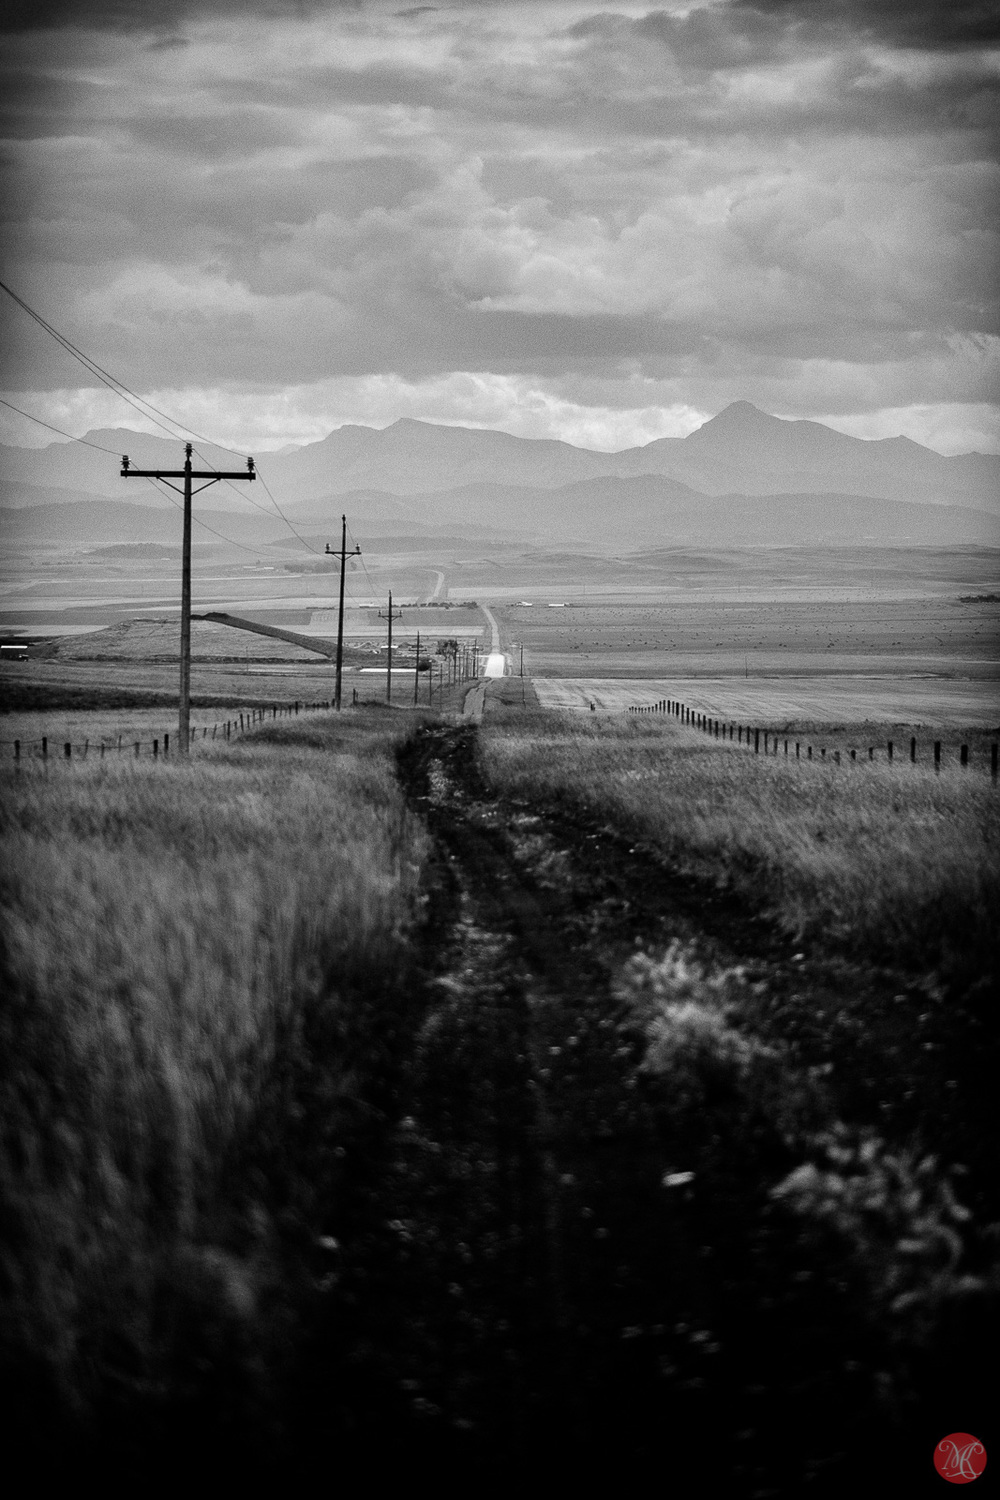 Old road to the mountains - Alberta landscape